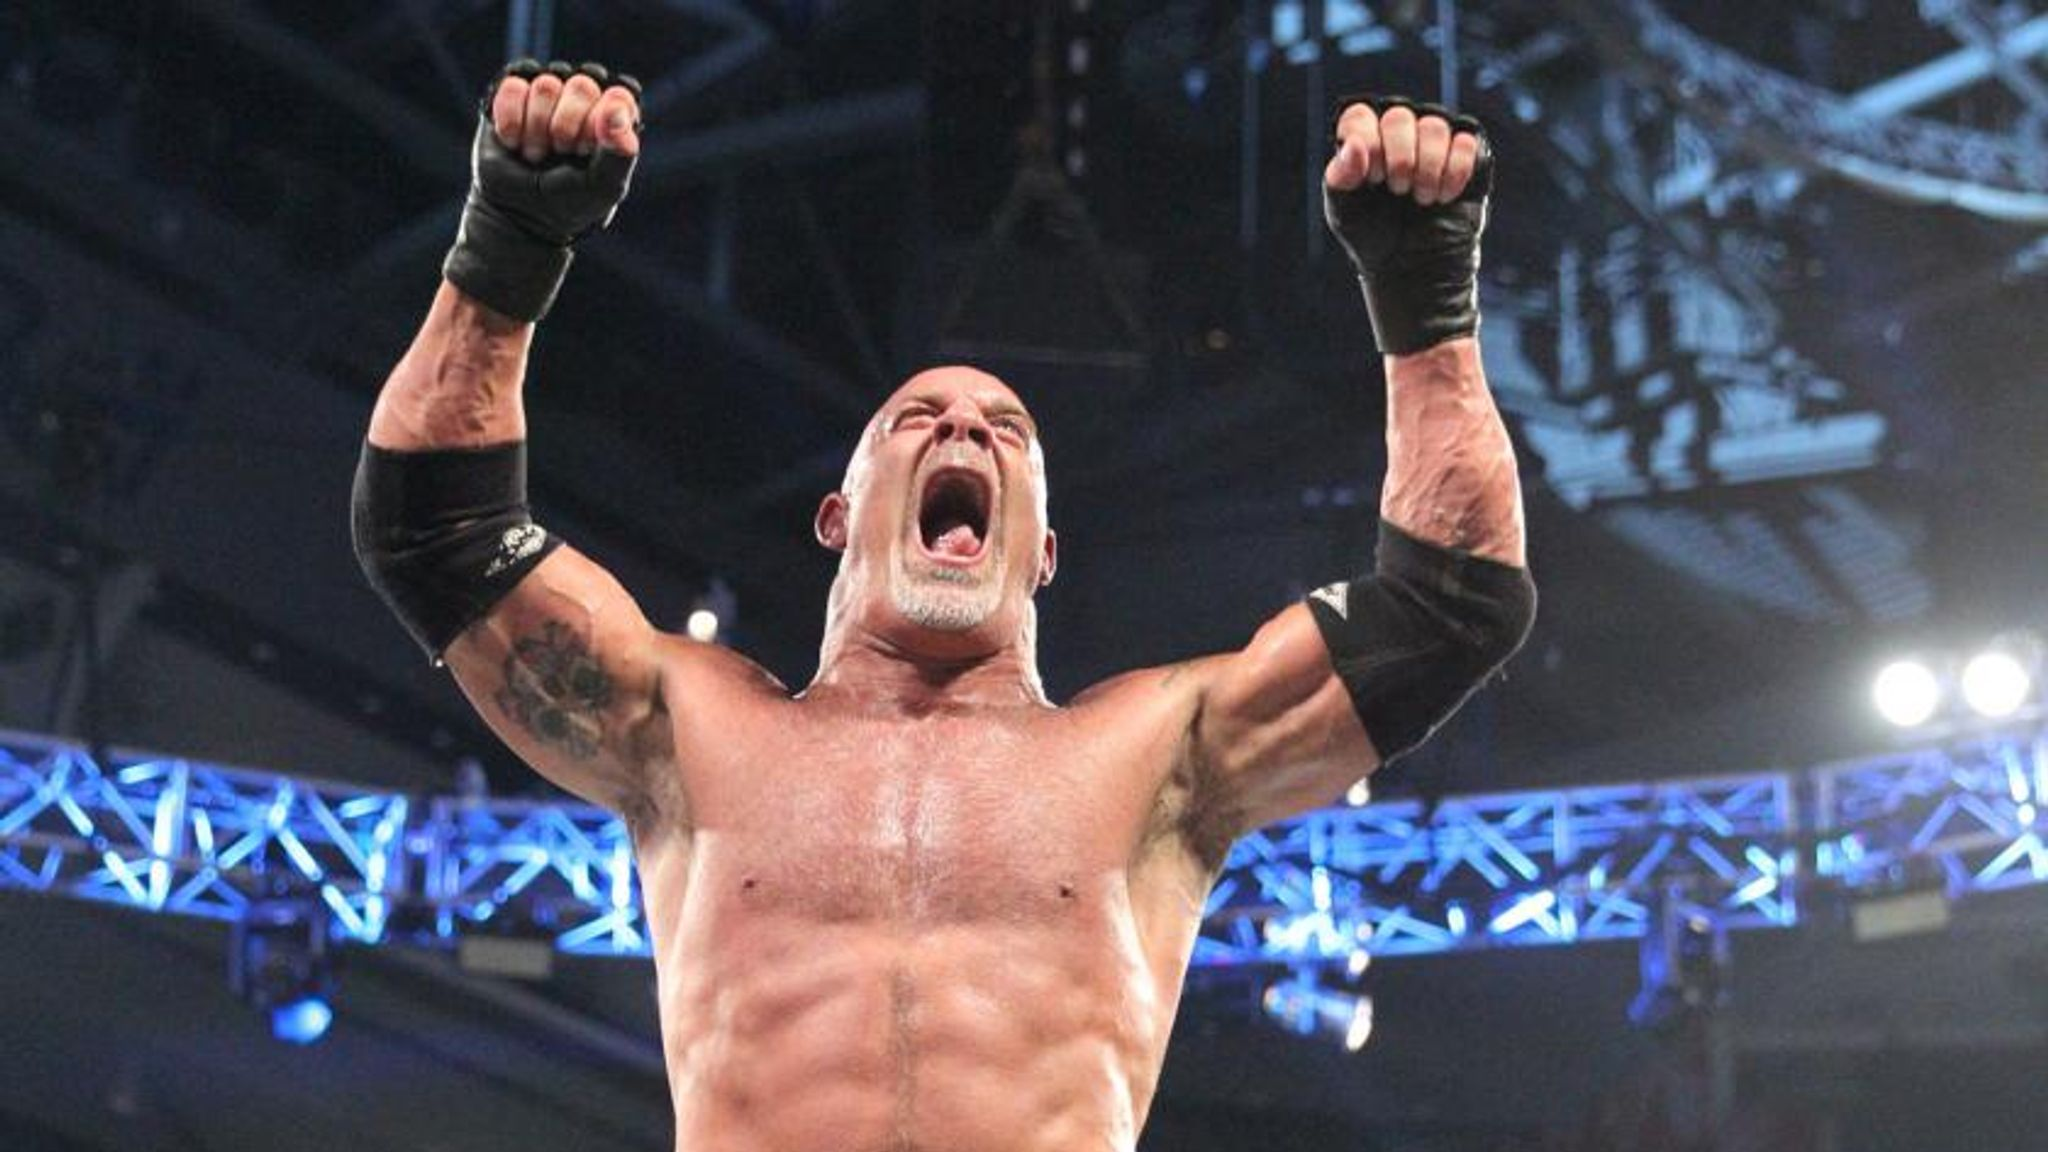 WWE: Vote for your Superstar of the week following Survivor Series